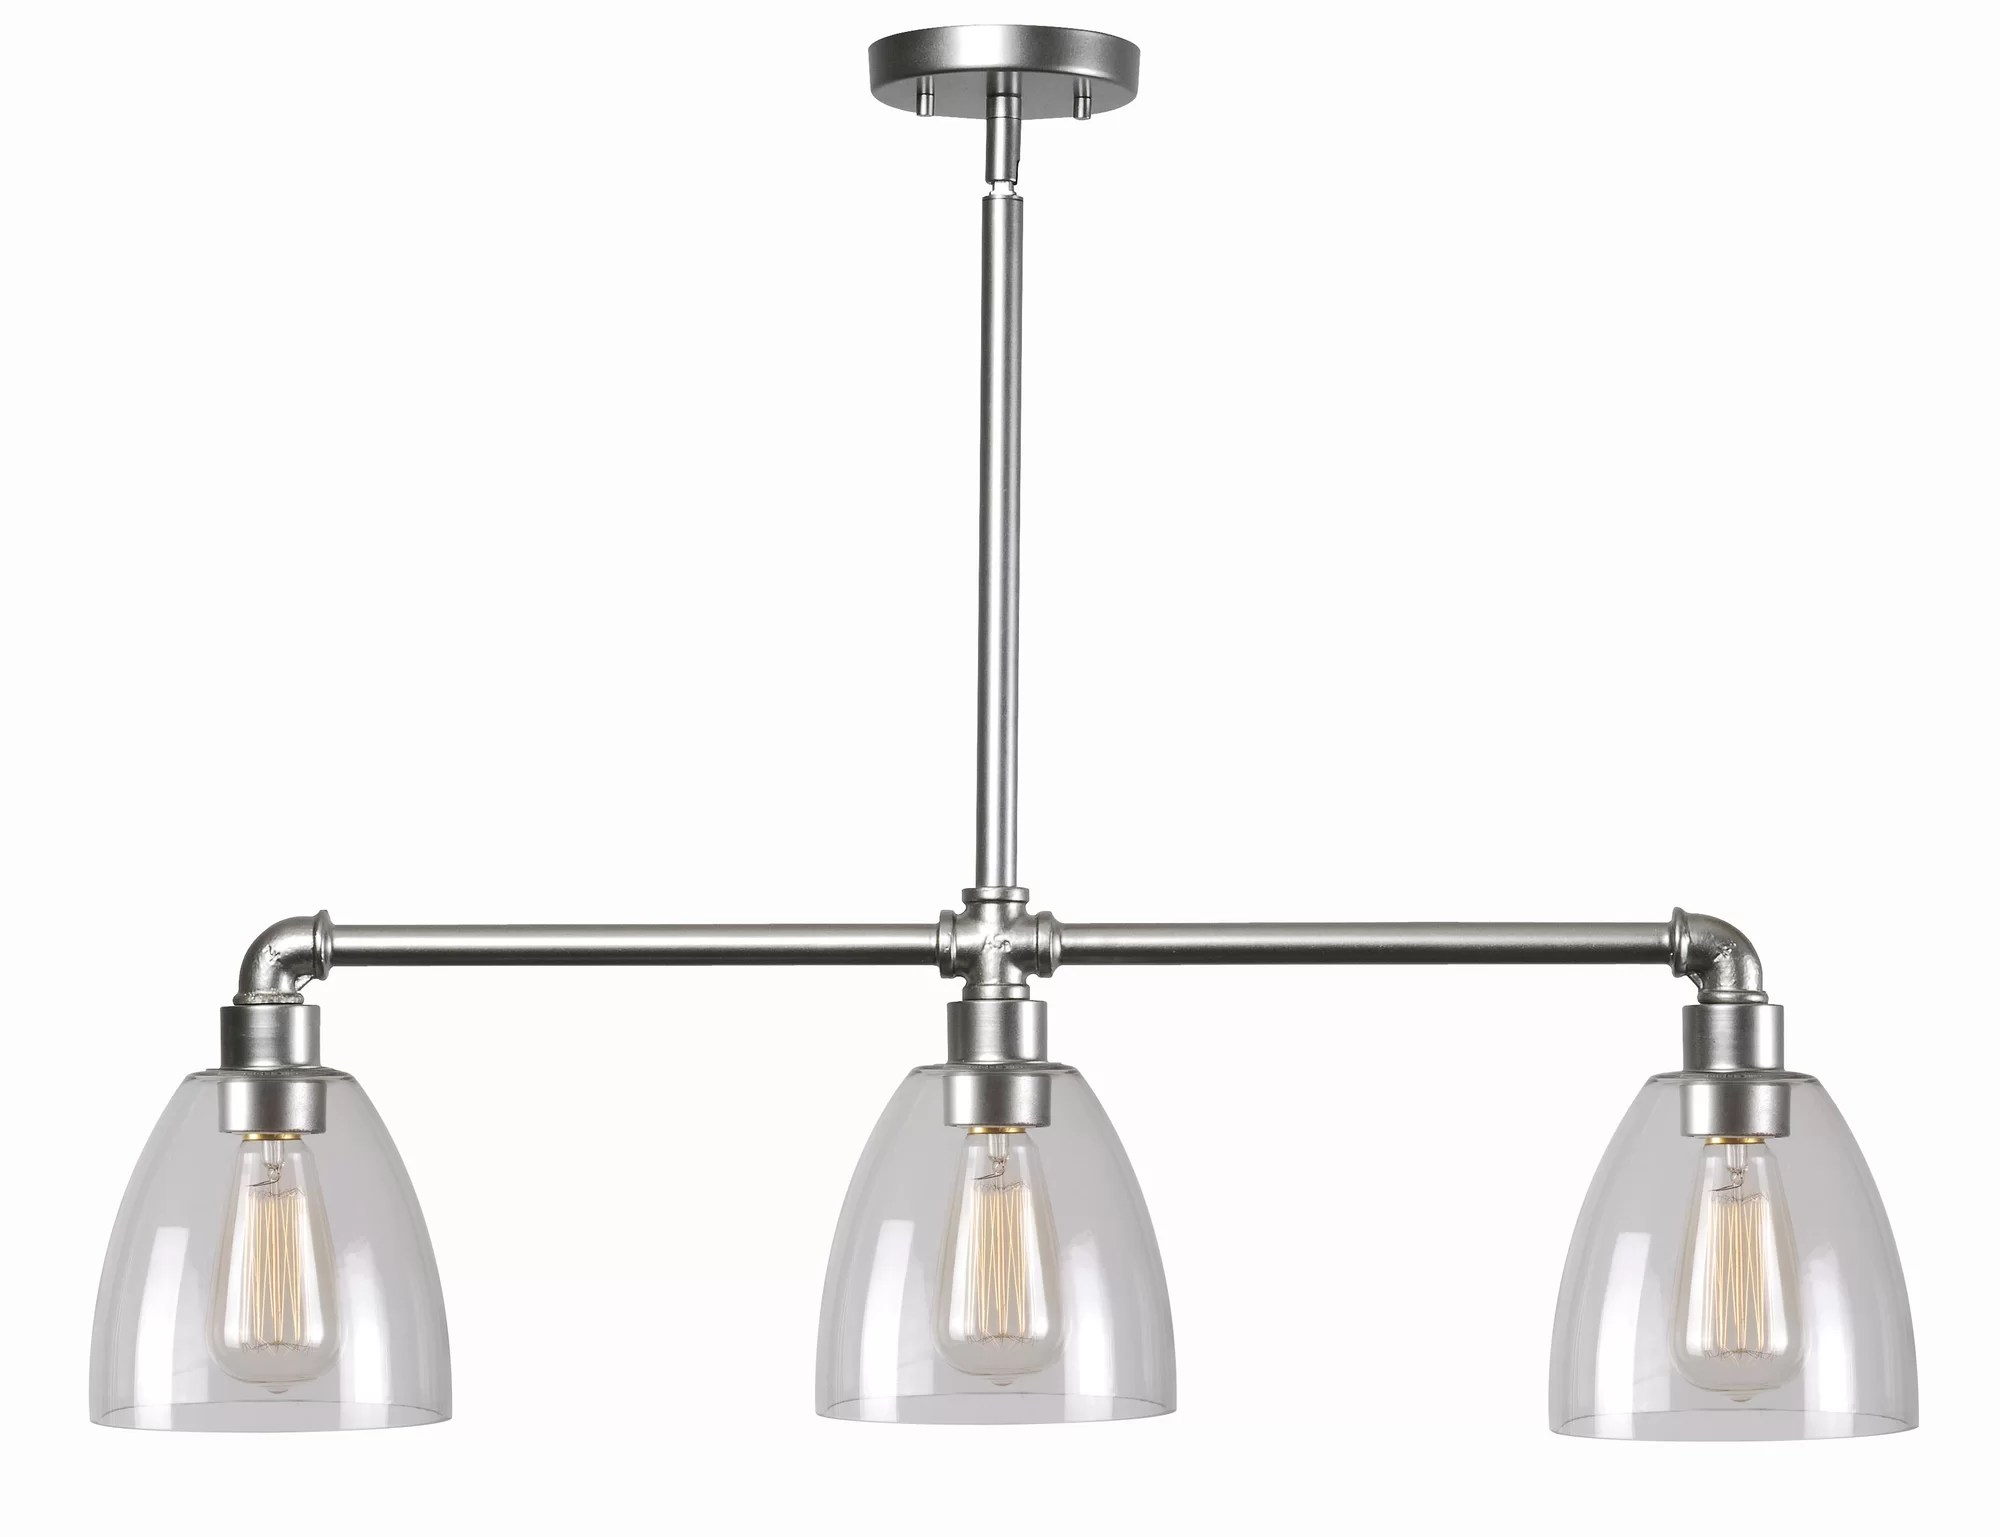 Pendant Island Lights Wildon Home Industrial Fitter 3 Light Kitchen Island